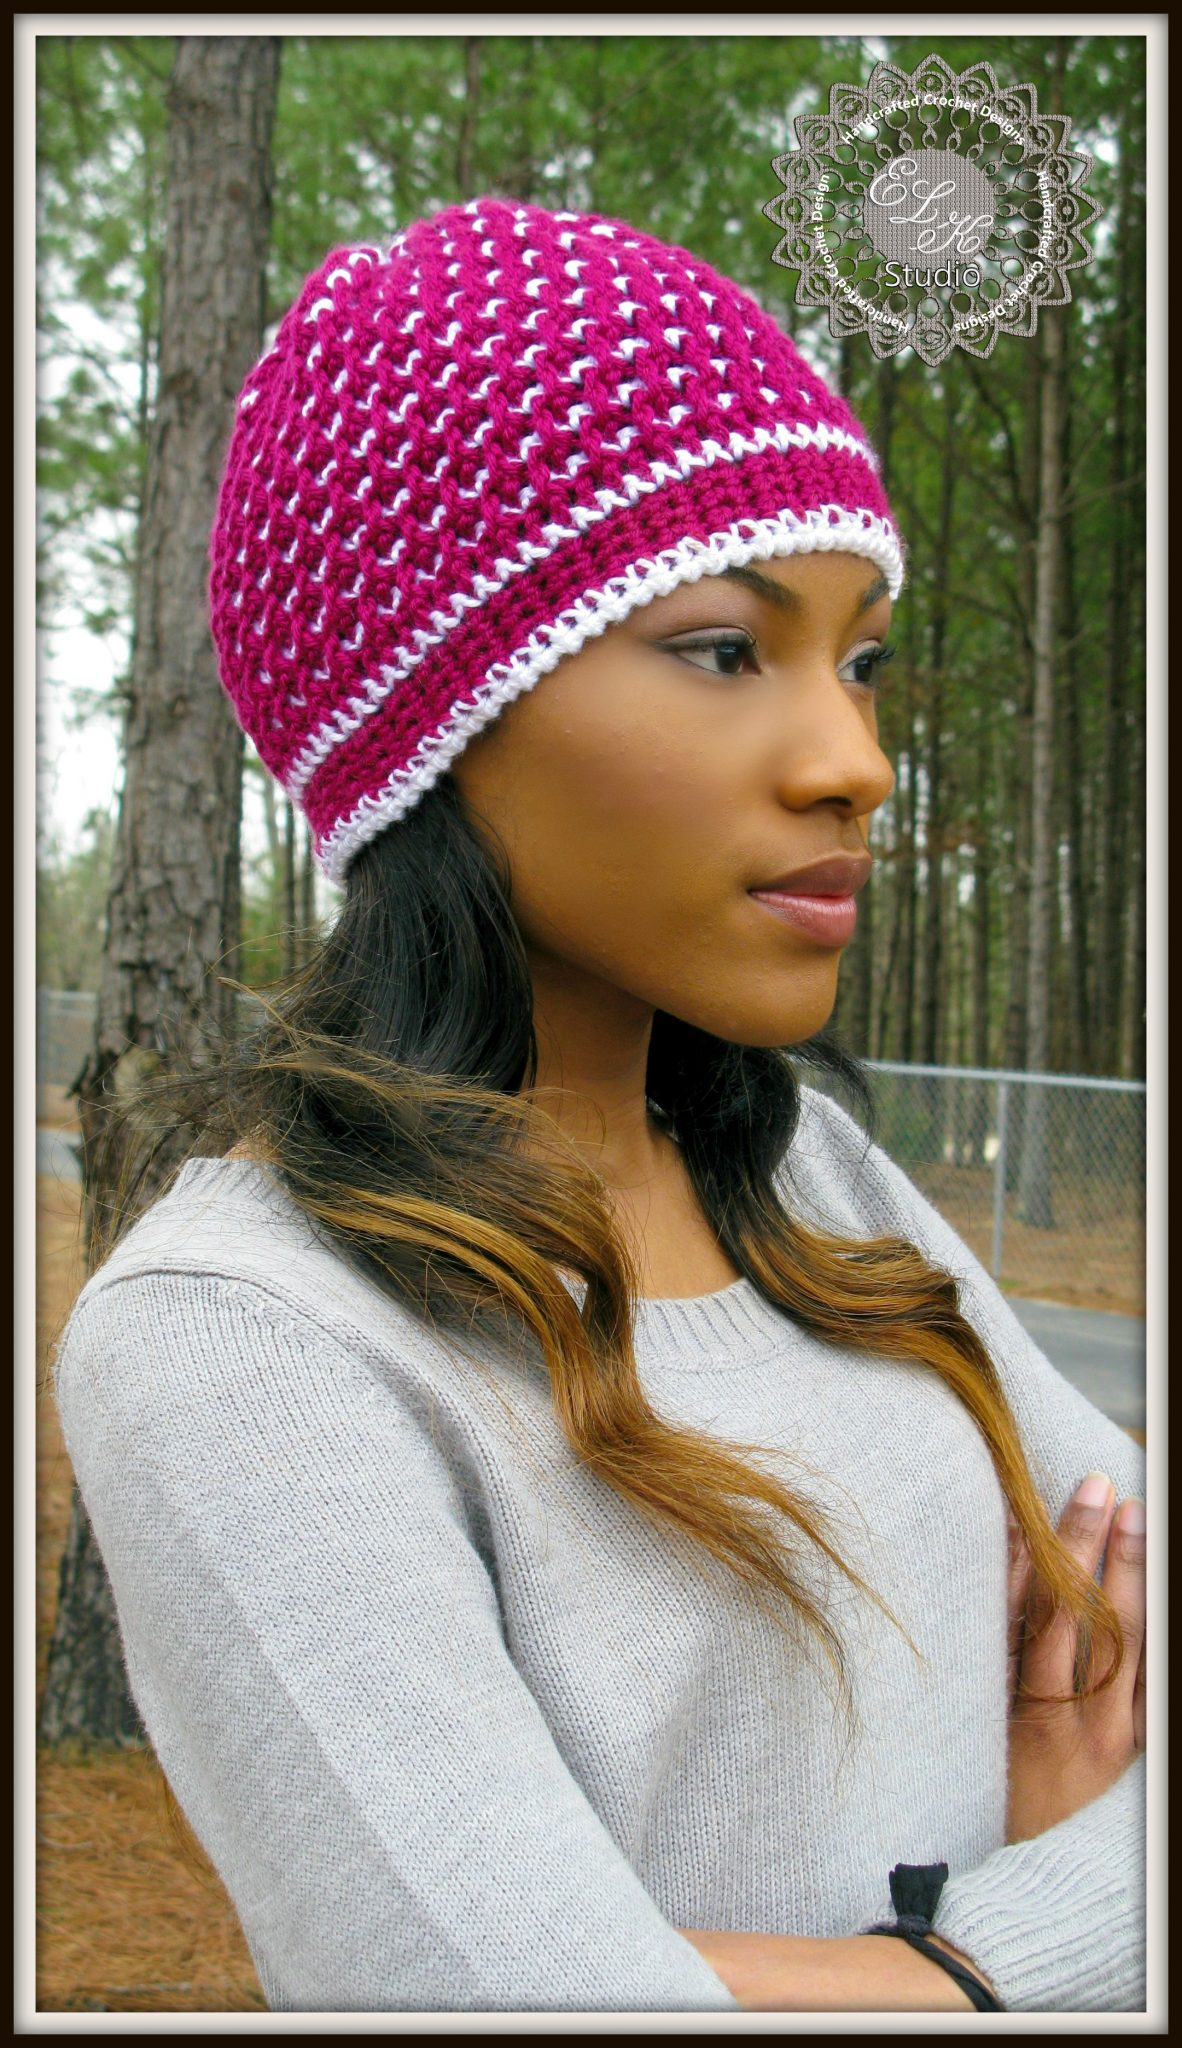 Free Patterns Crochet Winter Hats : Morning Frost - A Free Crochet Hat Pattern - ELK Studio ...